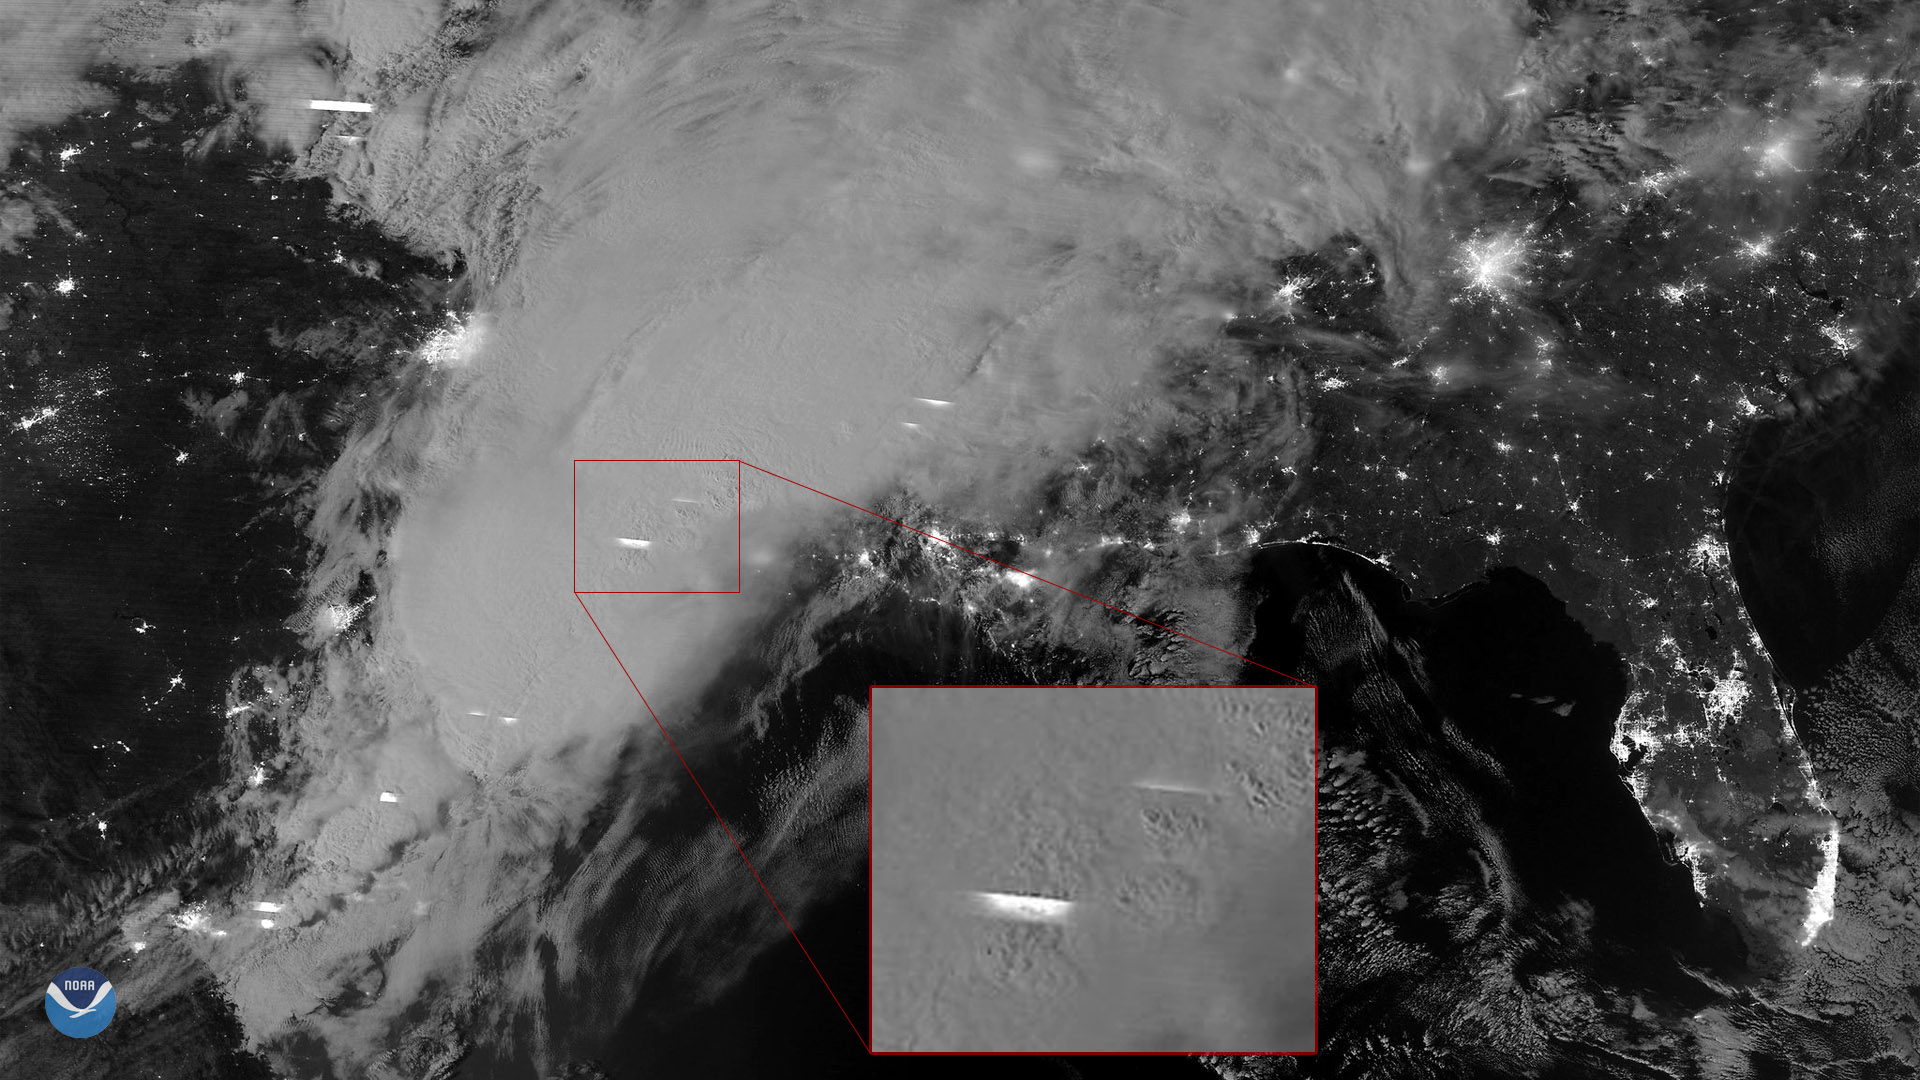 NOAA-20 Captures Nighttime Imagery of Storms in the South